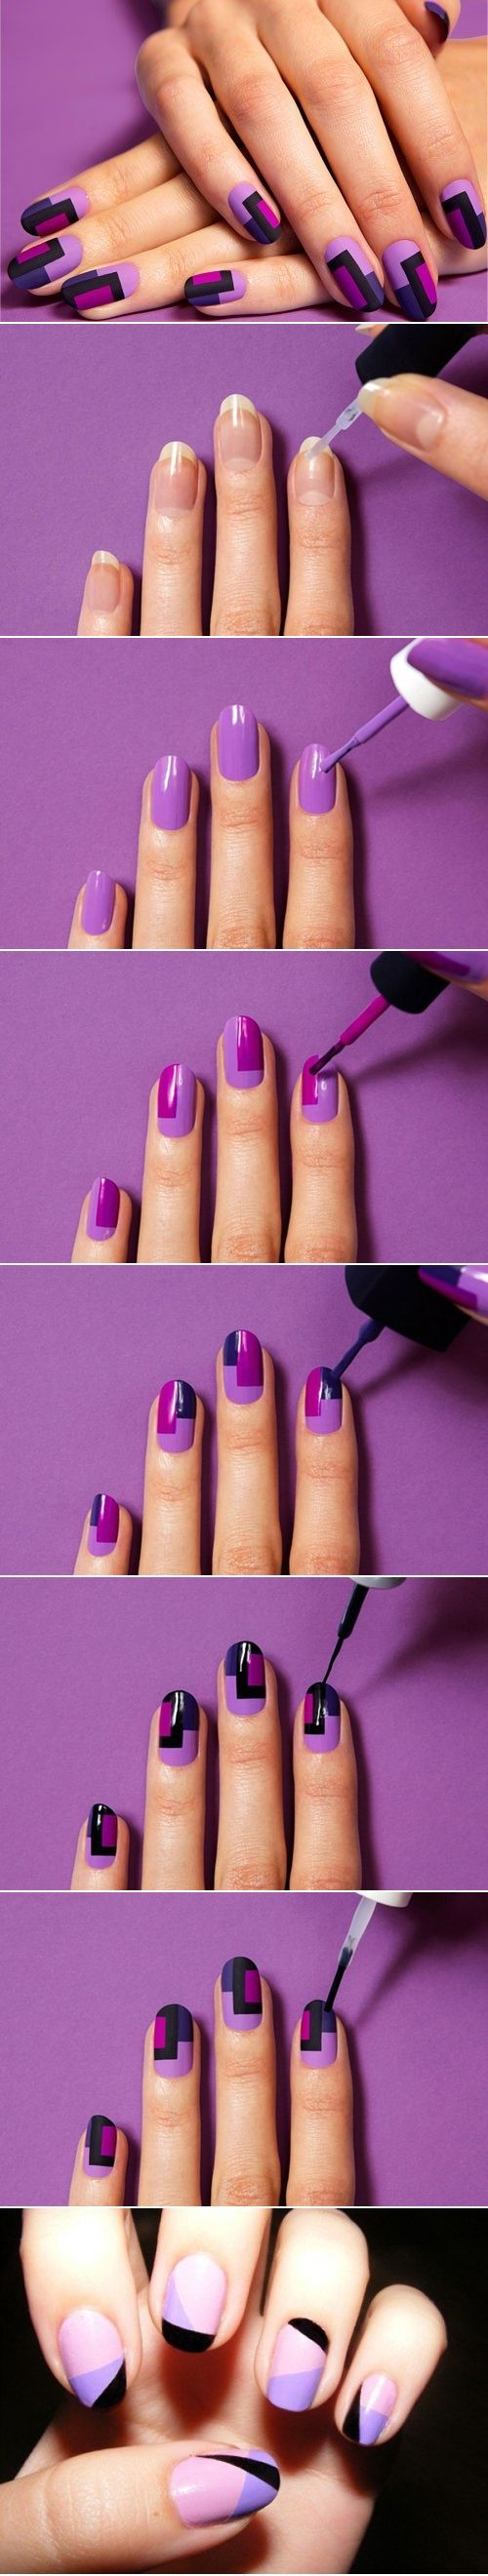 Easy Step-by-Step Color Block Nail Tutorials: Easy Step-by-Step Color Block Nail Tutorials